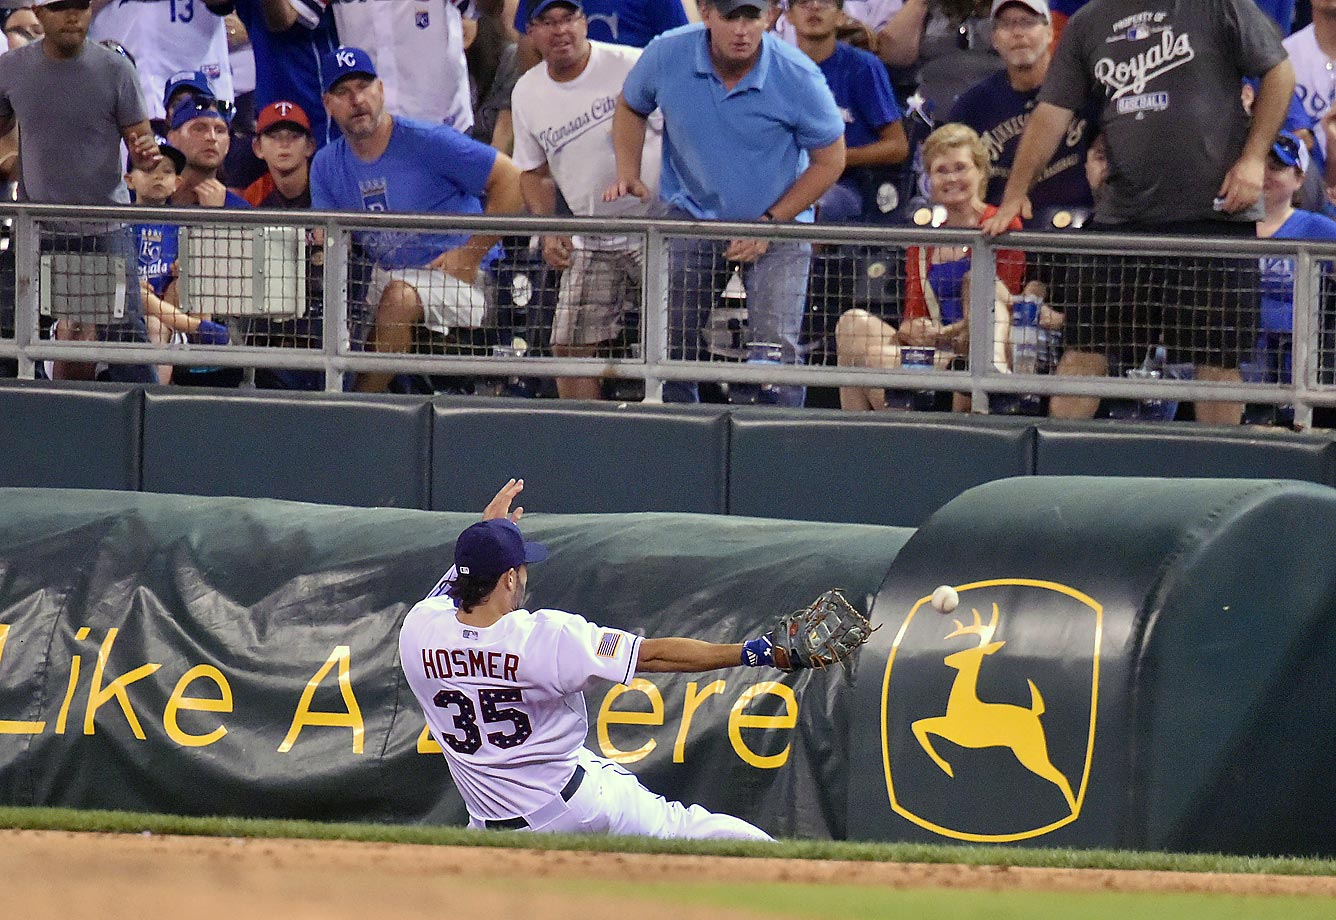 Eric Hosmer of the Kansas City Royals tries to catch a foul ball against the Minnesota Twins.